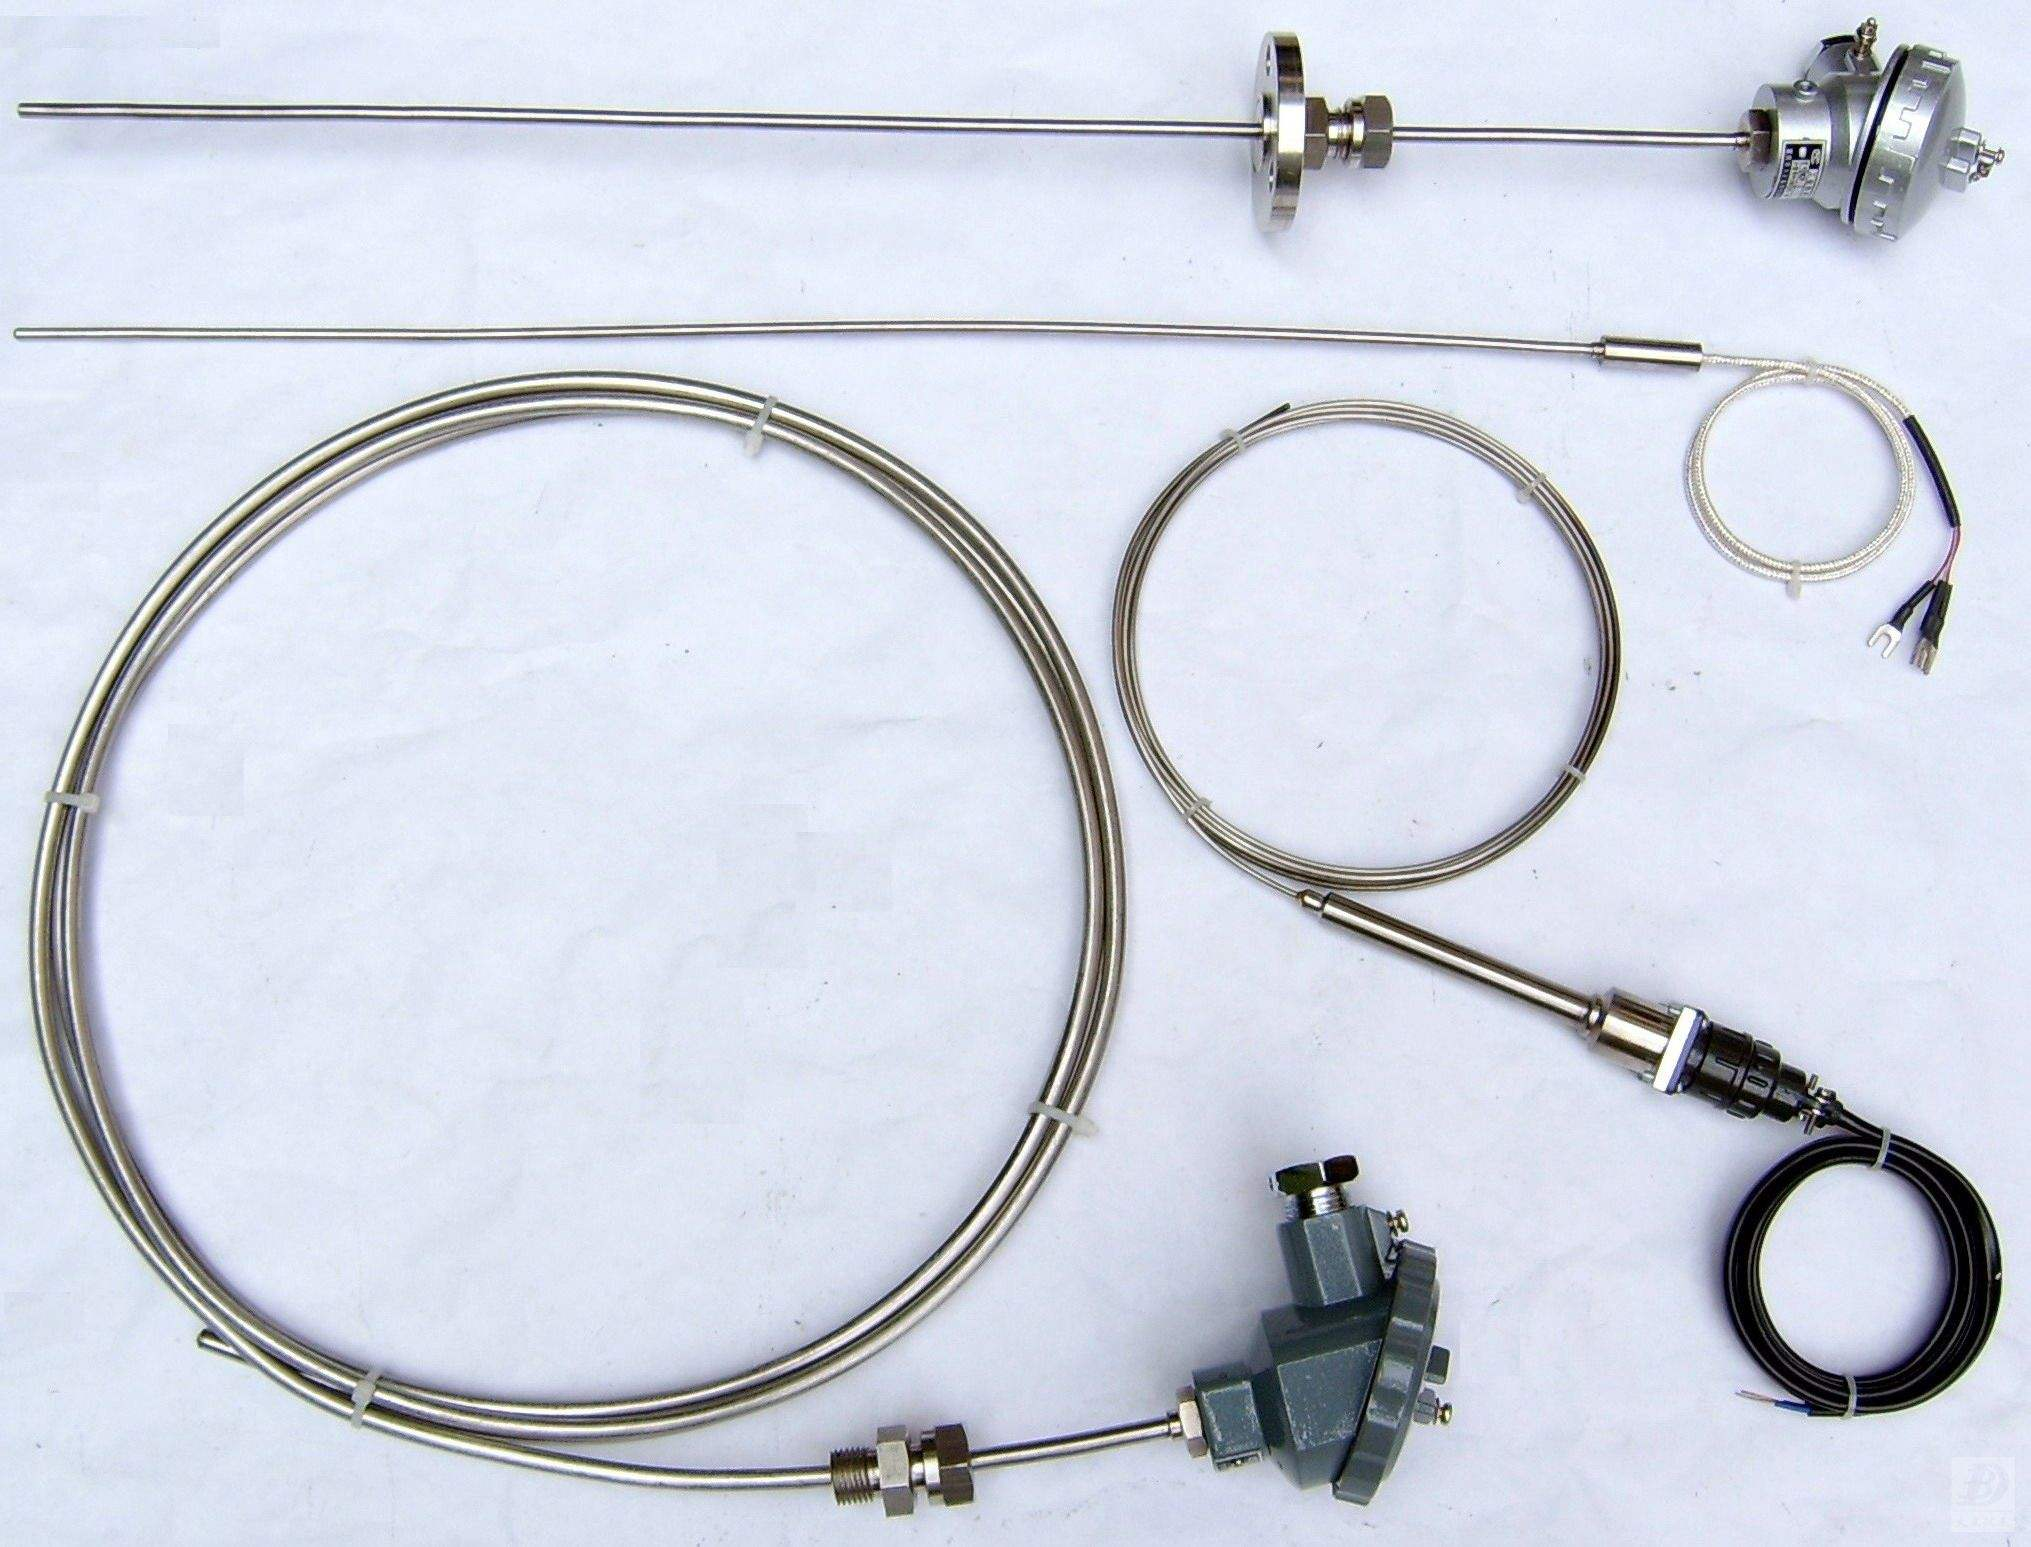 WRNK-191 armored thermocouple